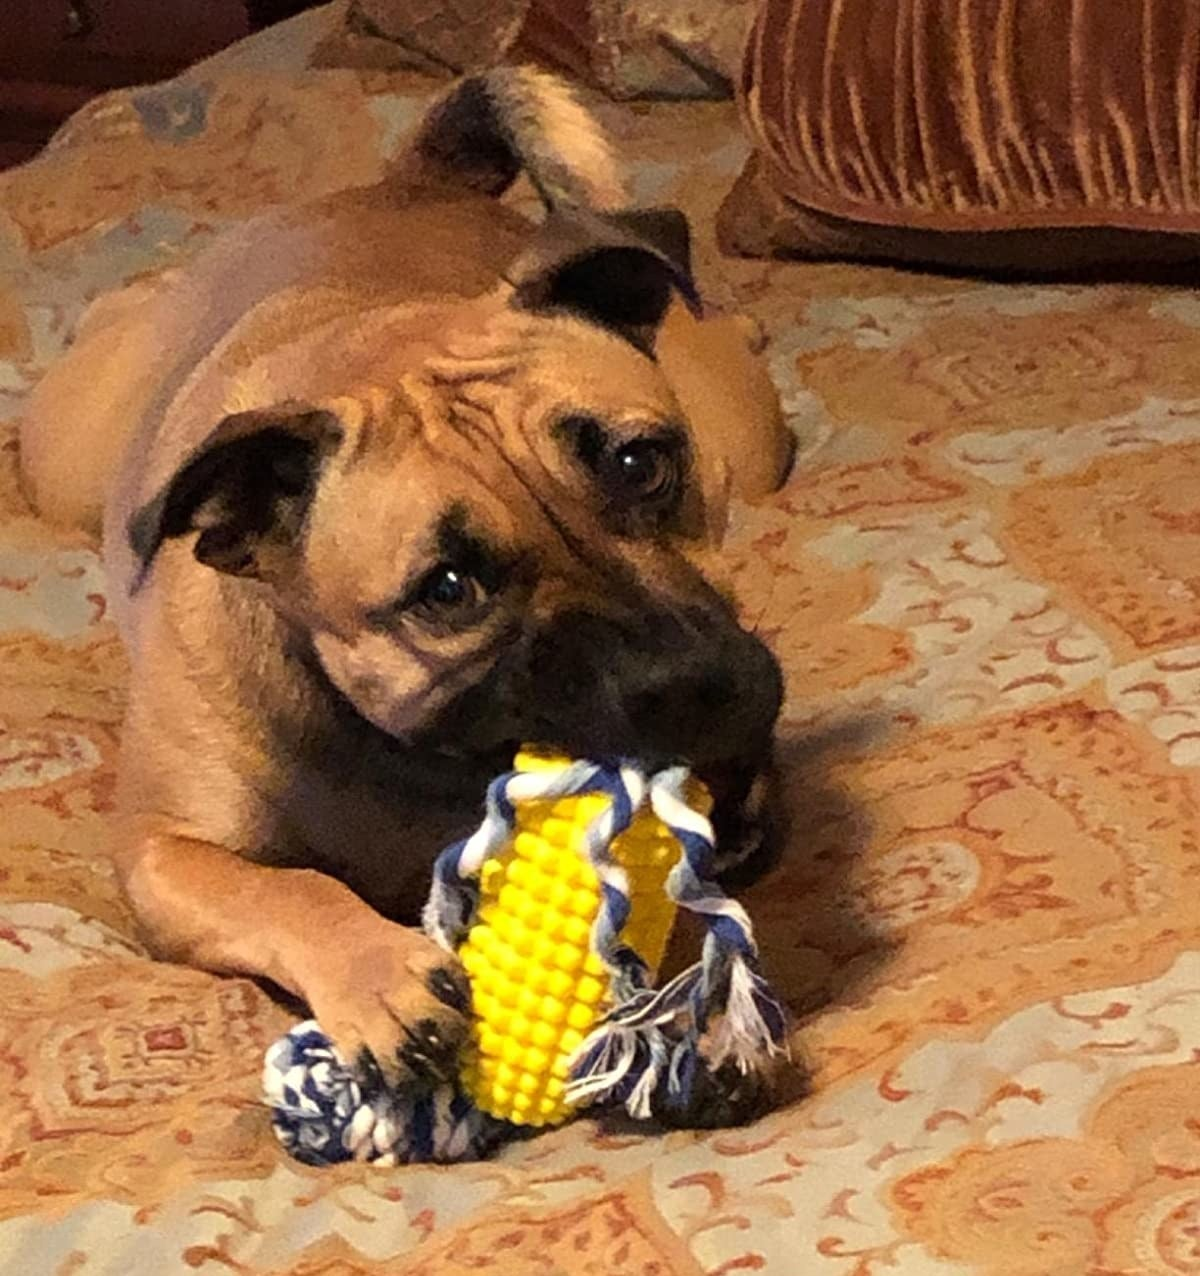 A dog chewing on the toy, which is shaped like an ear of corn on the cob, with a hollow center with a rope running through it